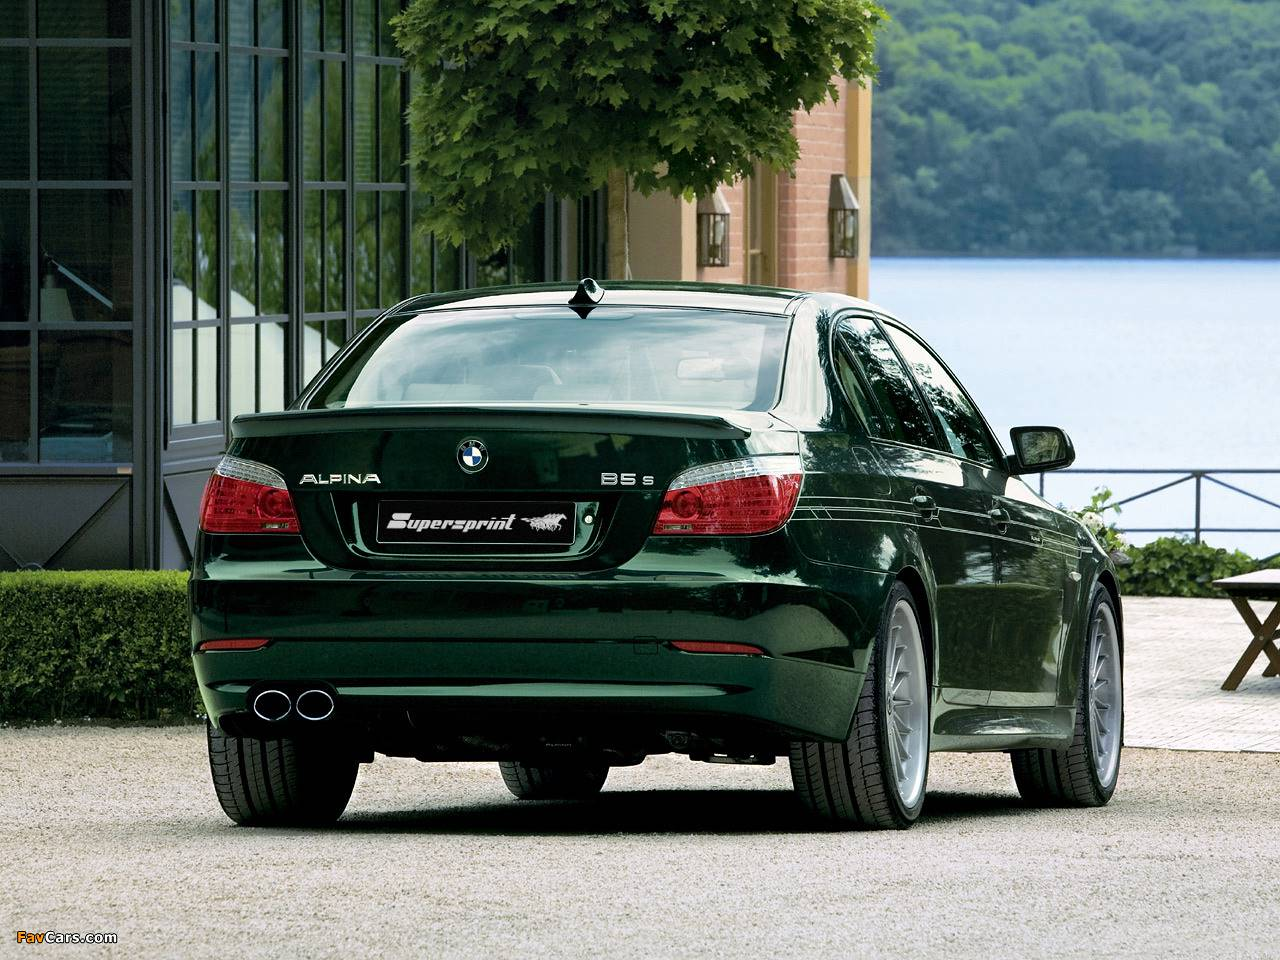 Alpina BMW - ALPINA B5 S (E60 / E61 Sedan / Touring) 4.4i V8 (530 Hp) 2007 -> 2010  (with valve)